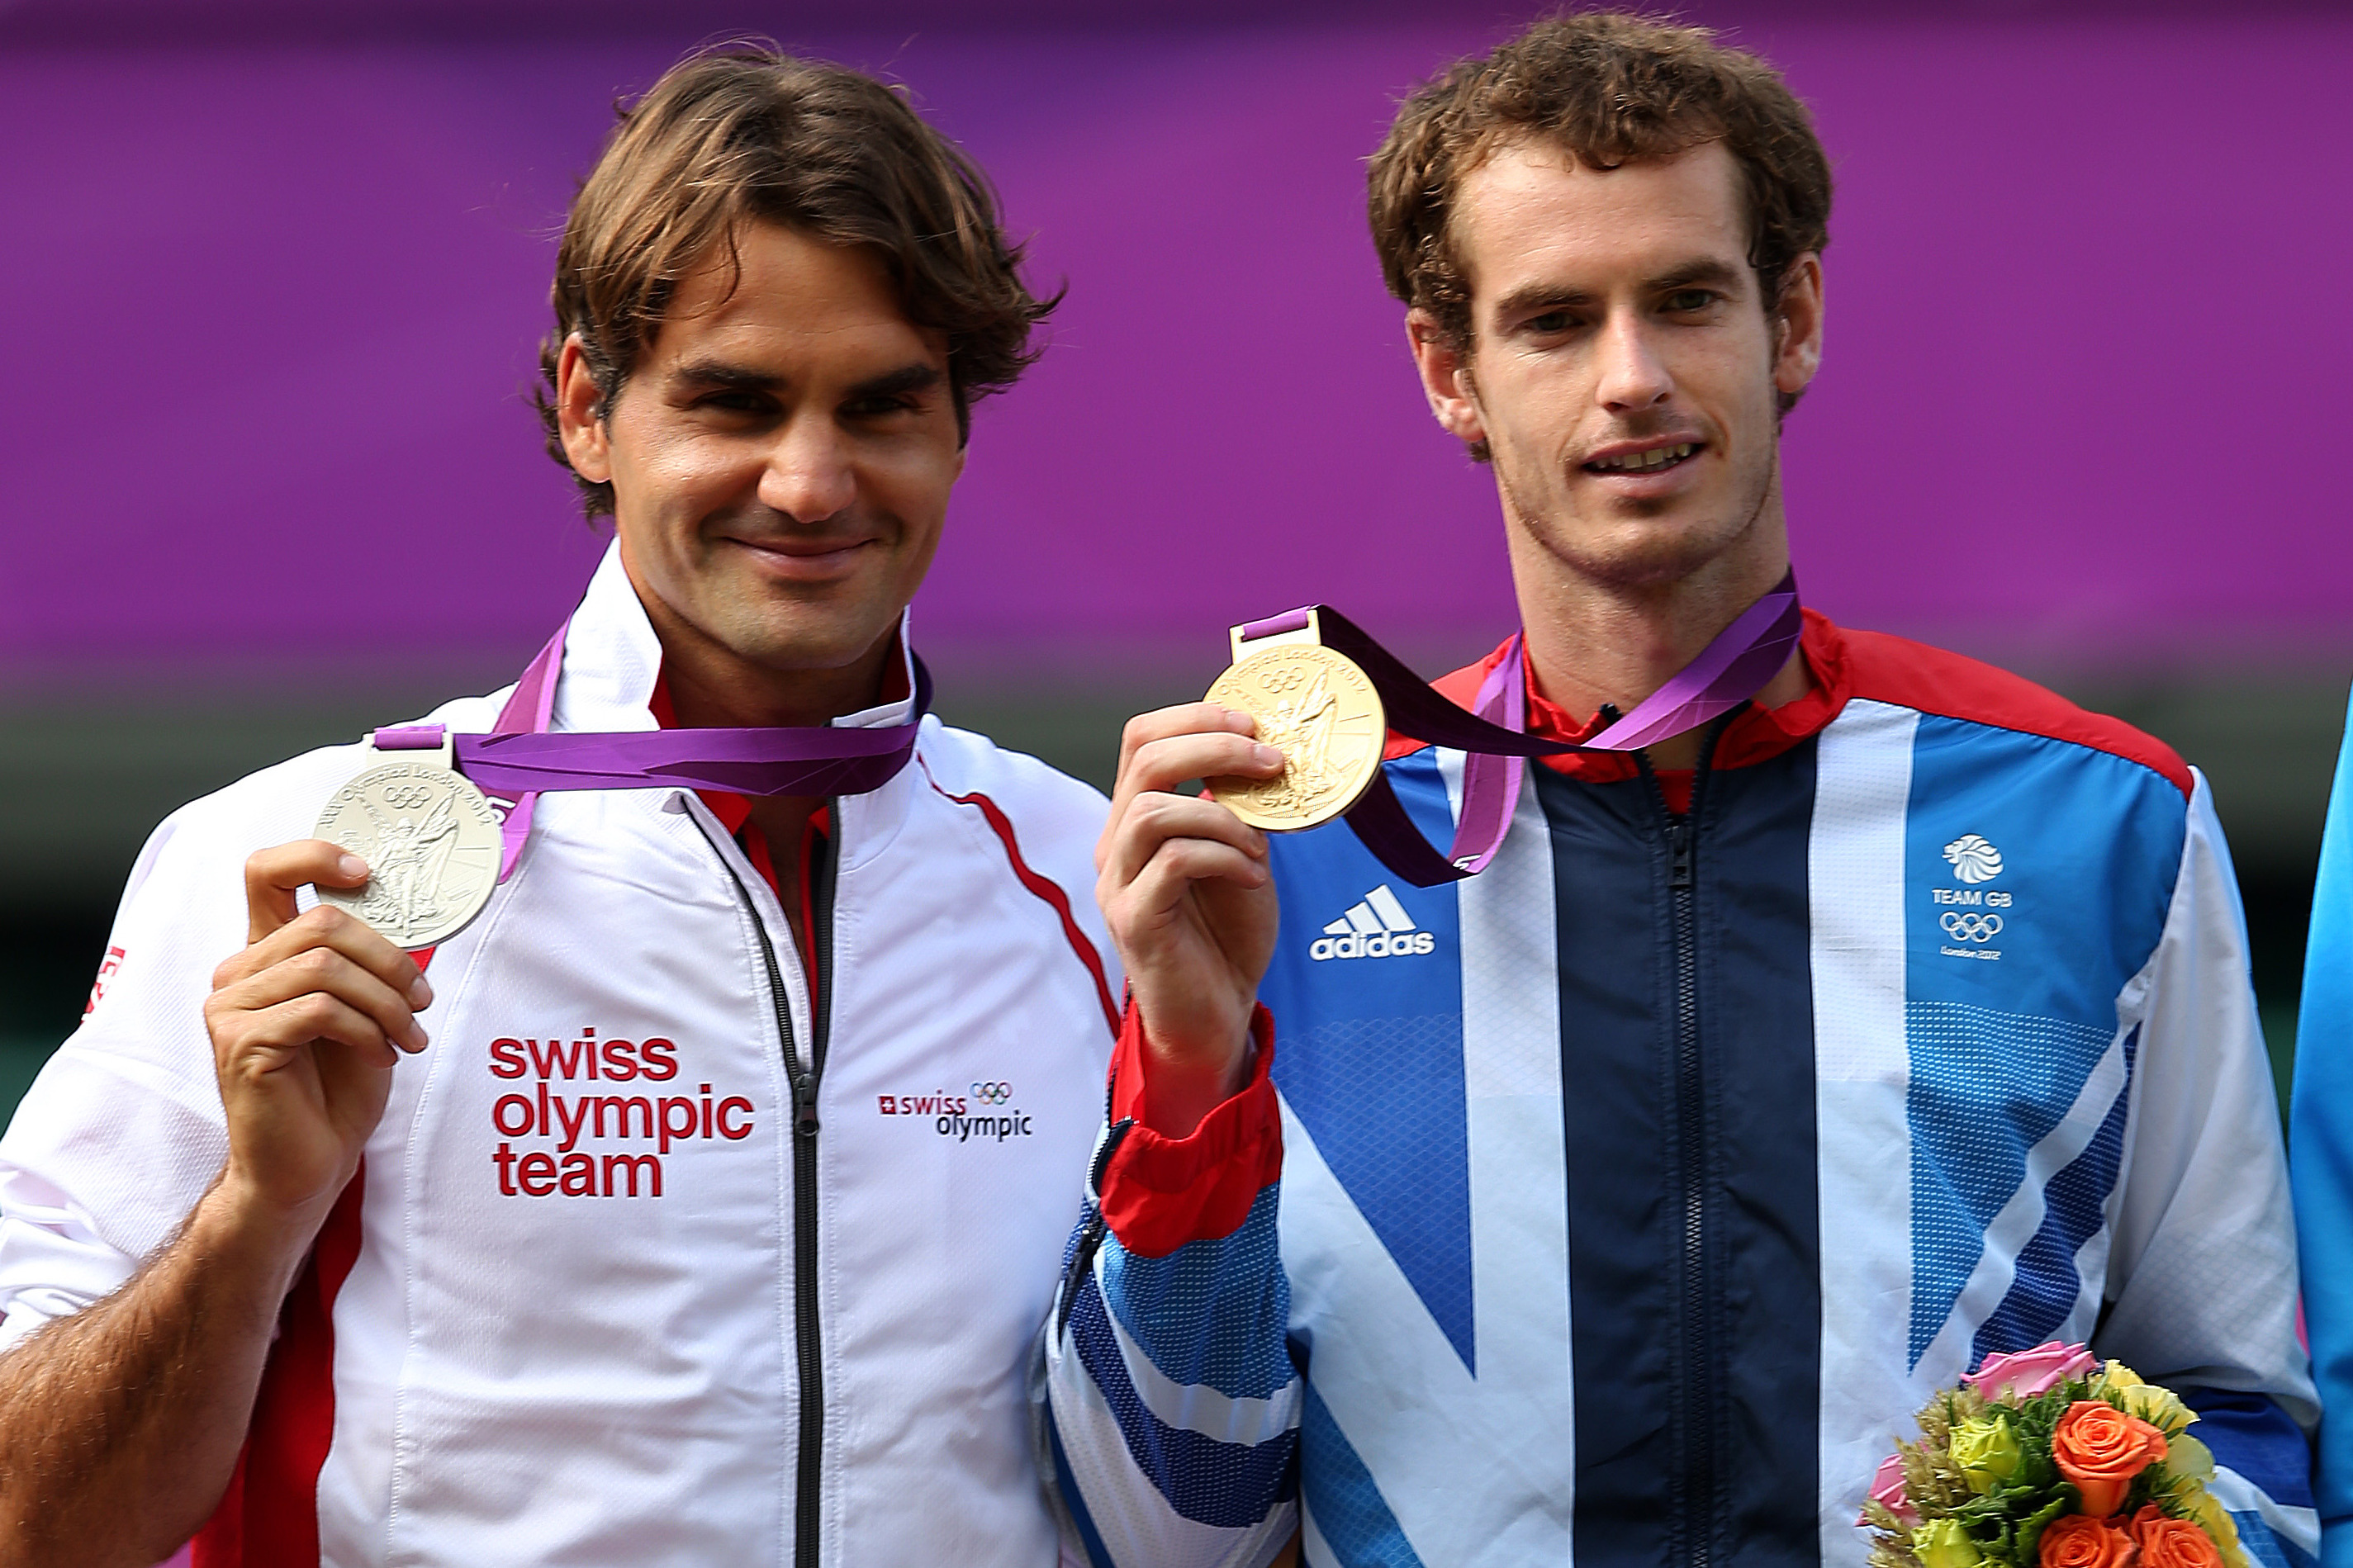 London 2012: Roger Federer Nabs Olympic Singles Silver Medal in 4th Attempt   Bleacher Report   Latest News, Videos and Highlights